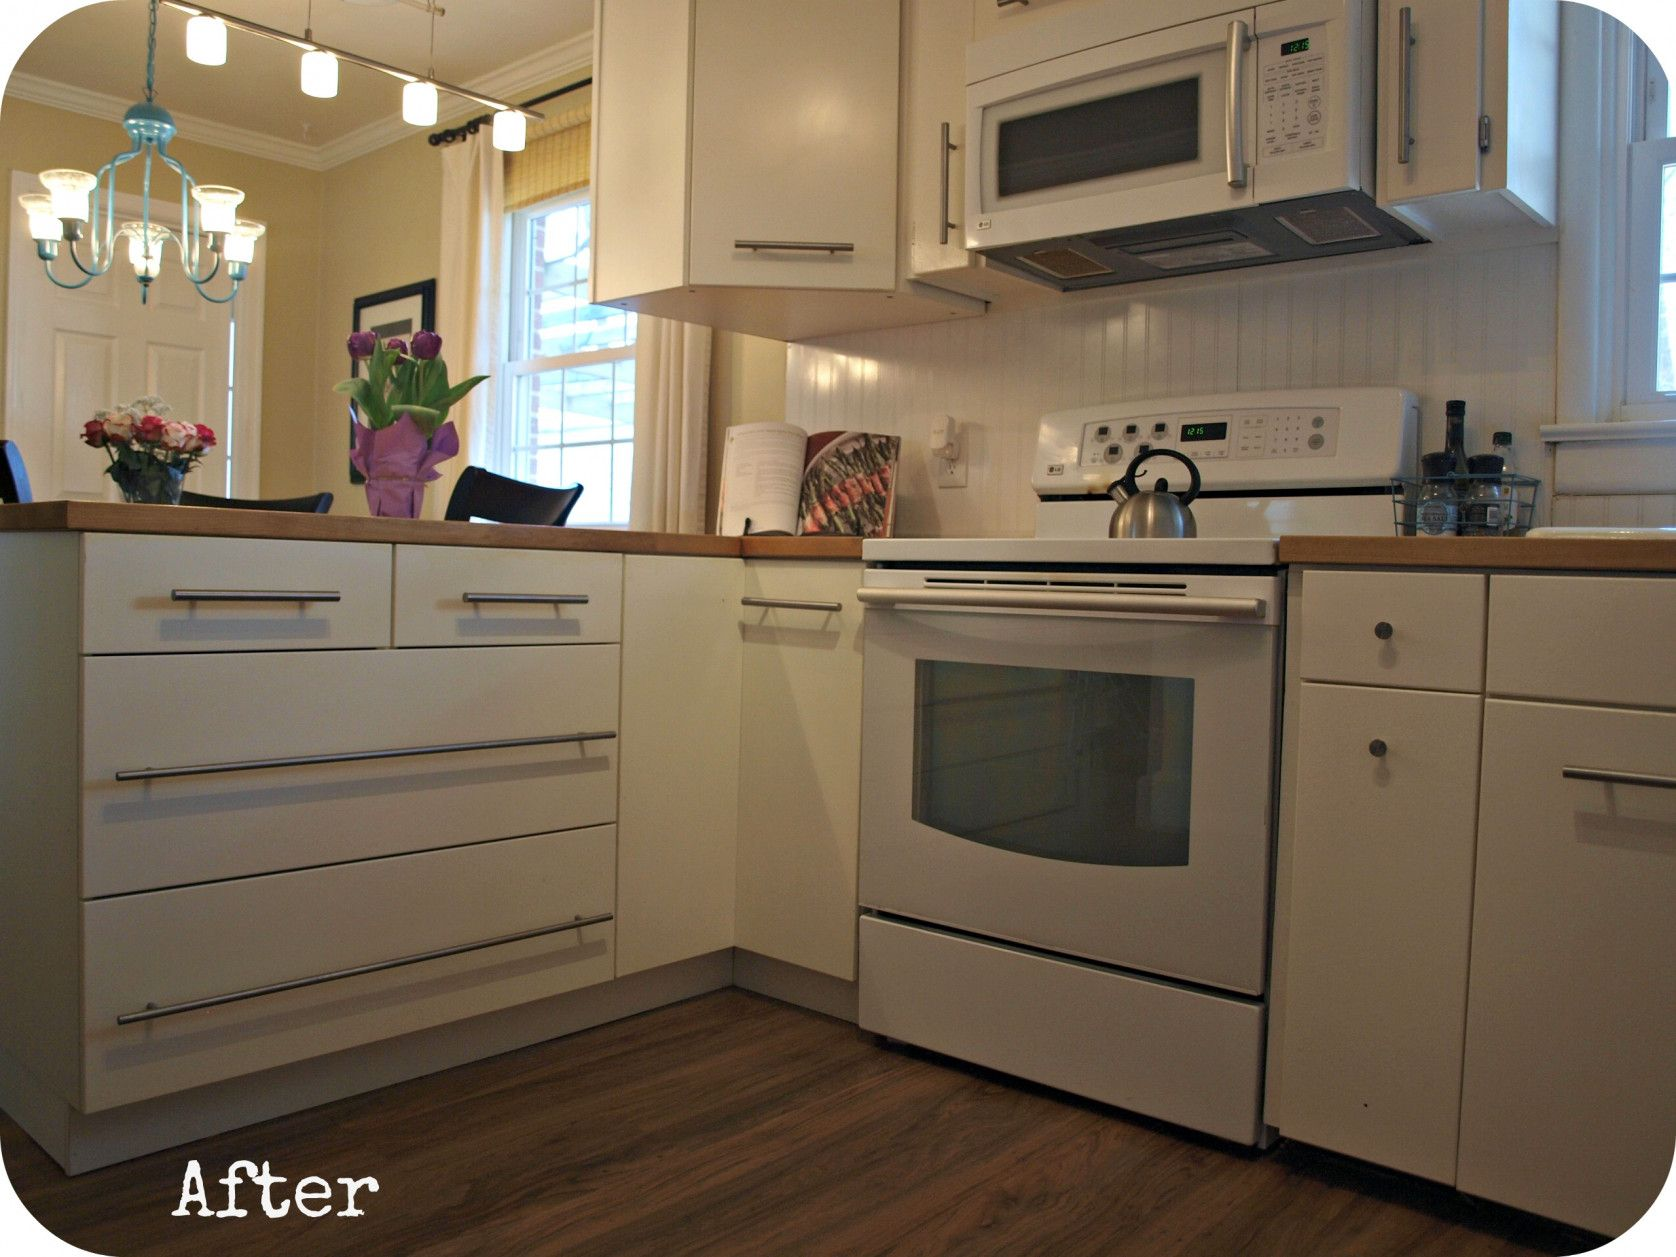 77 ikea kitchen doors on existing cabinets kitchen decor theme rh pinterest com Refacing Cabinets with Doors IKEA IKEA Cabinet Doors Only